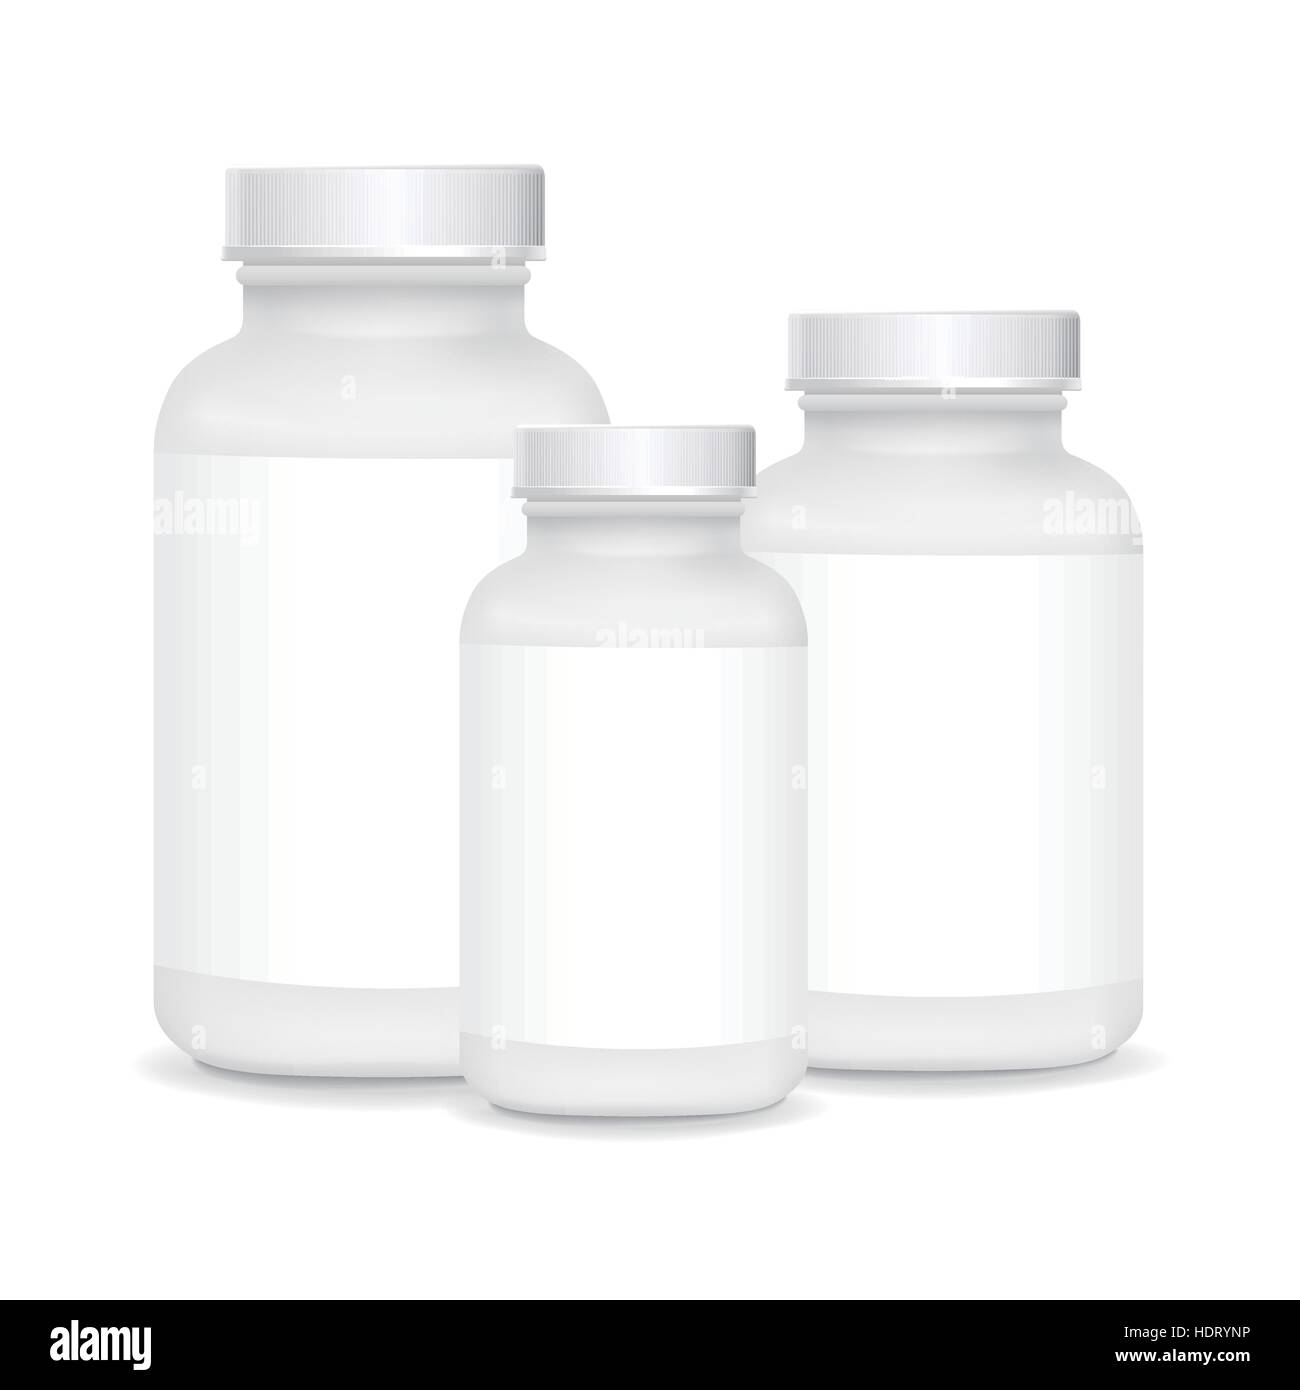 white plastic medical containers isolated on white background - Stock Vector